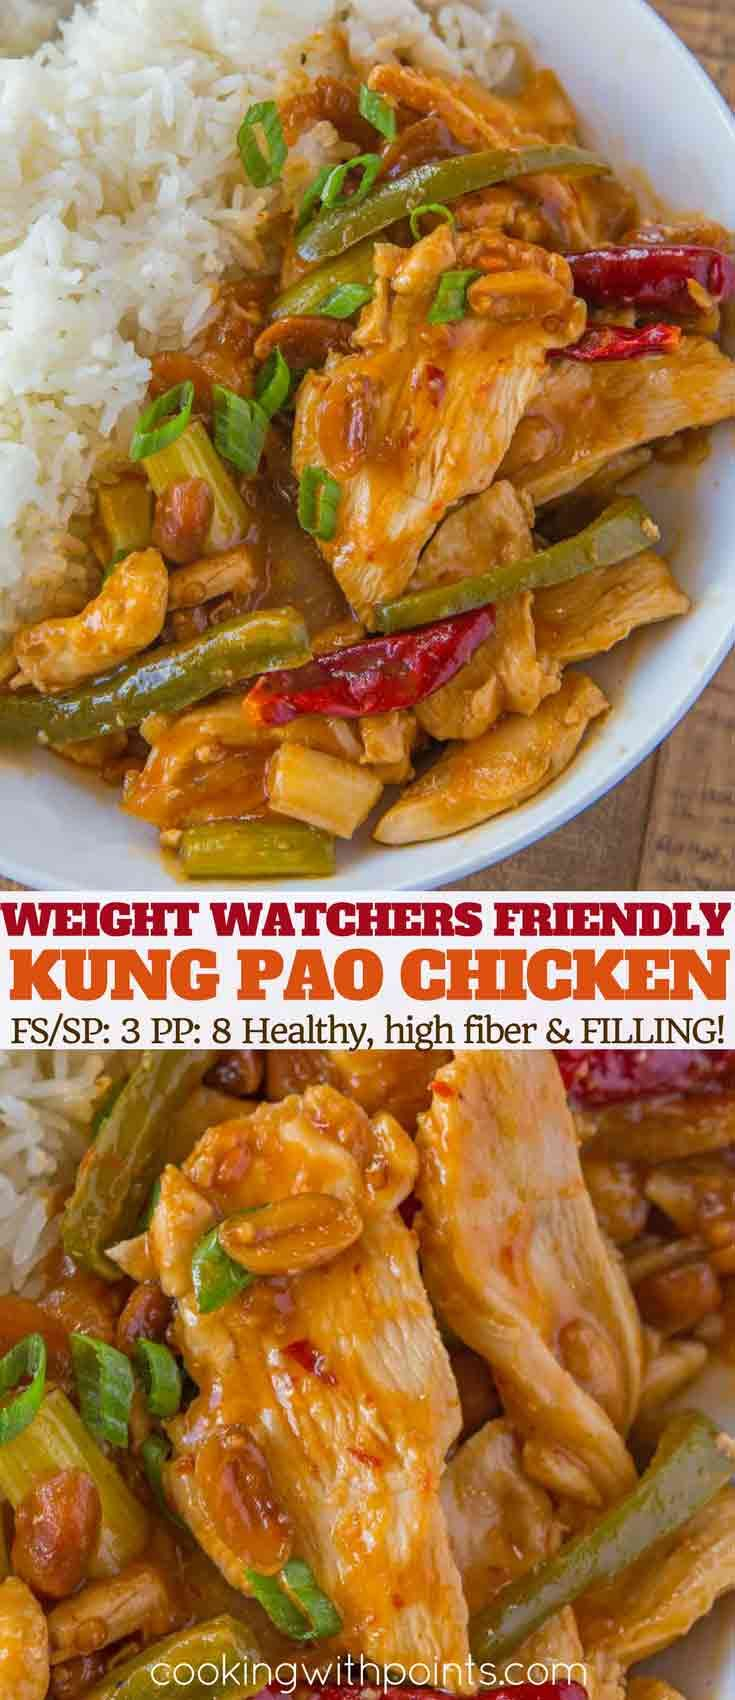 Skinny Kung Pao Chicken made in less than 30 minutes with chicken breast, bell peppers, peanuts and a slightly spicy garlic sauce for just 3 smart points per serving.